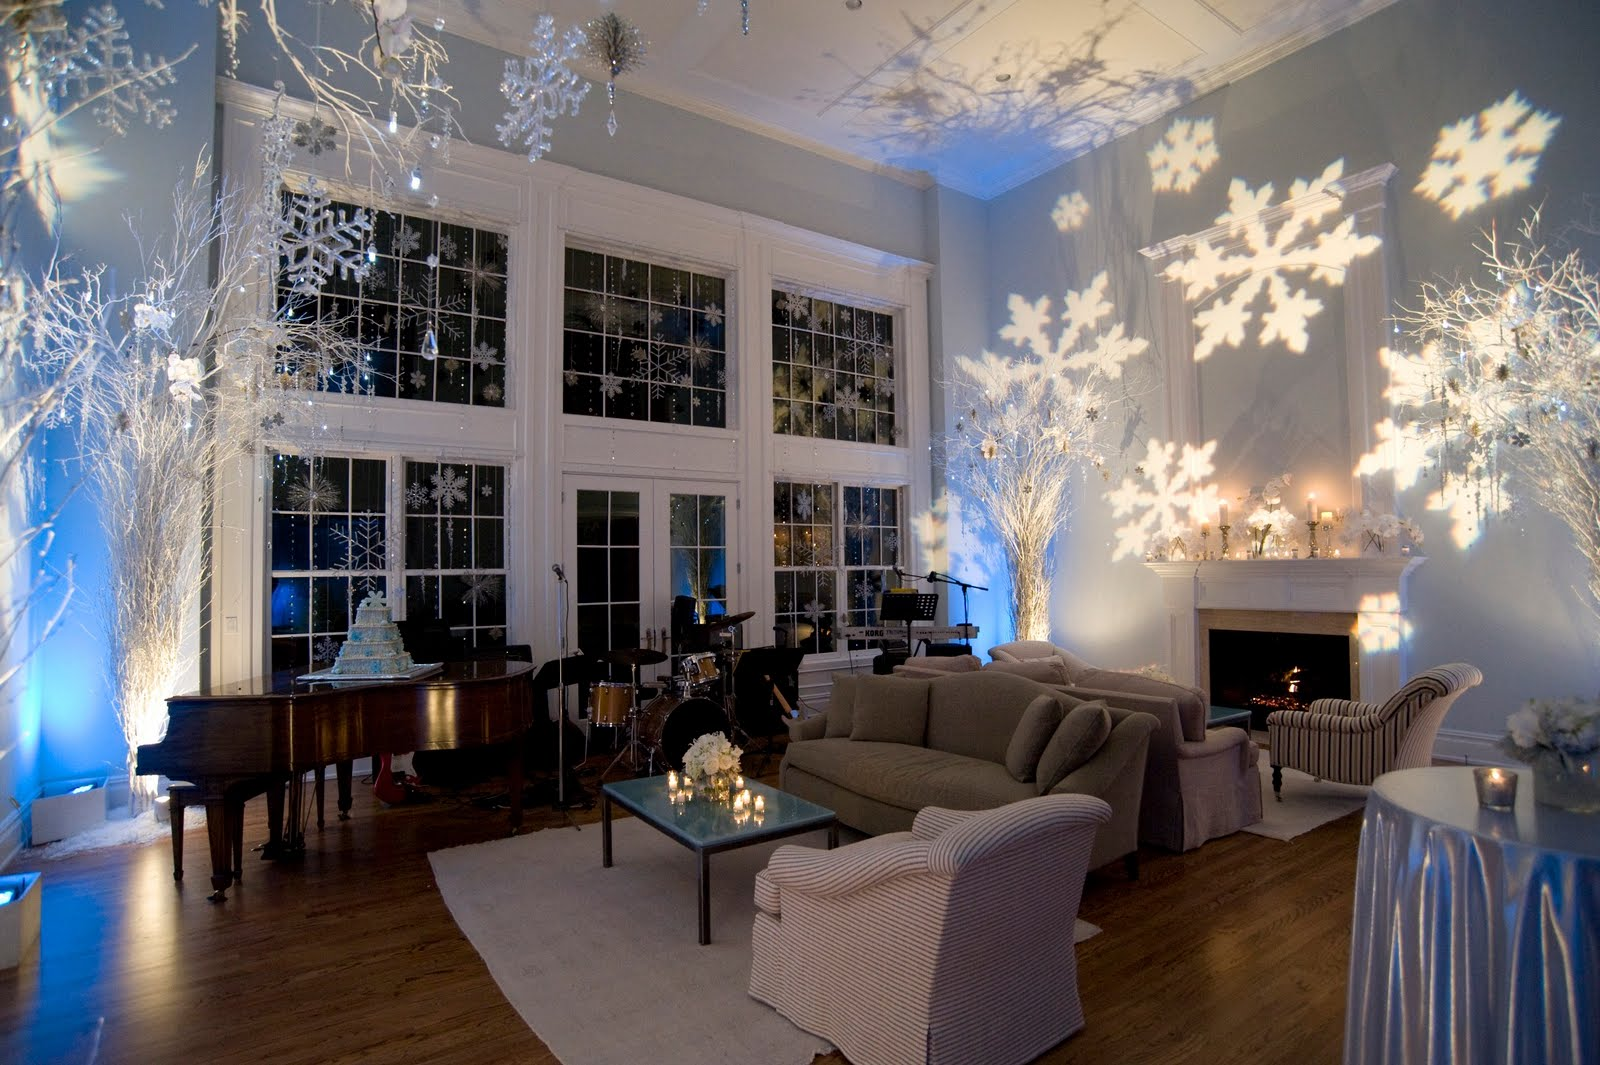 Winter Wonderland Wall Decorations Www Topsimages Com